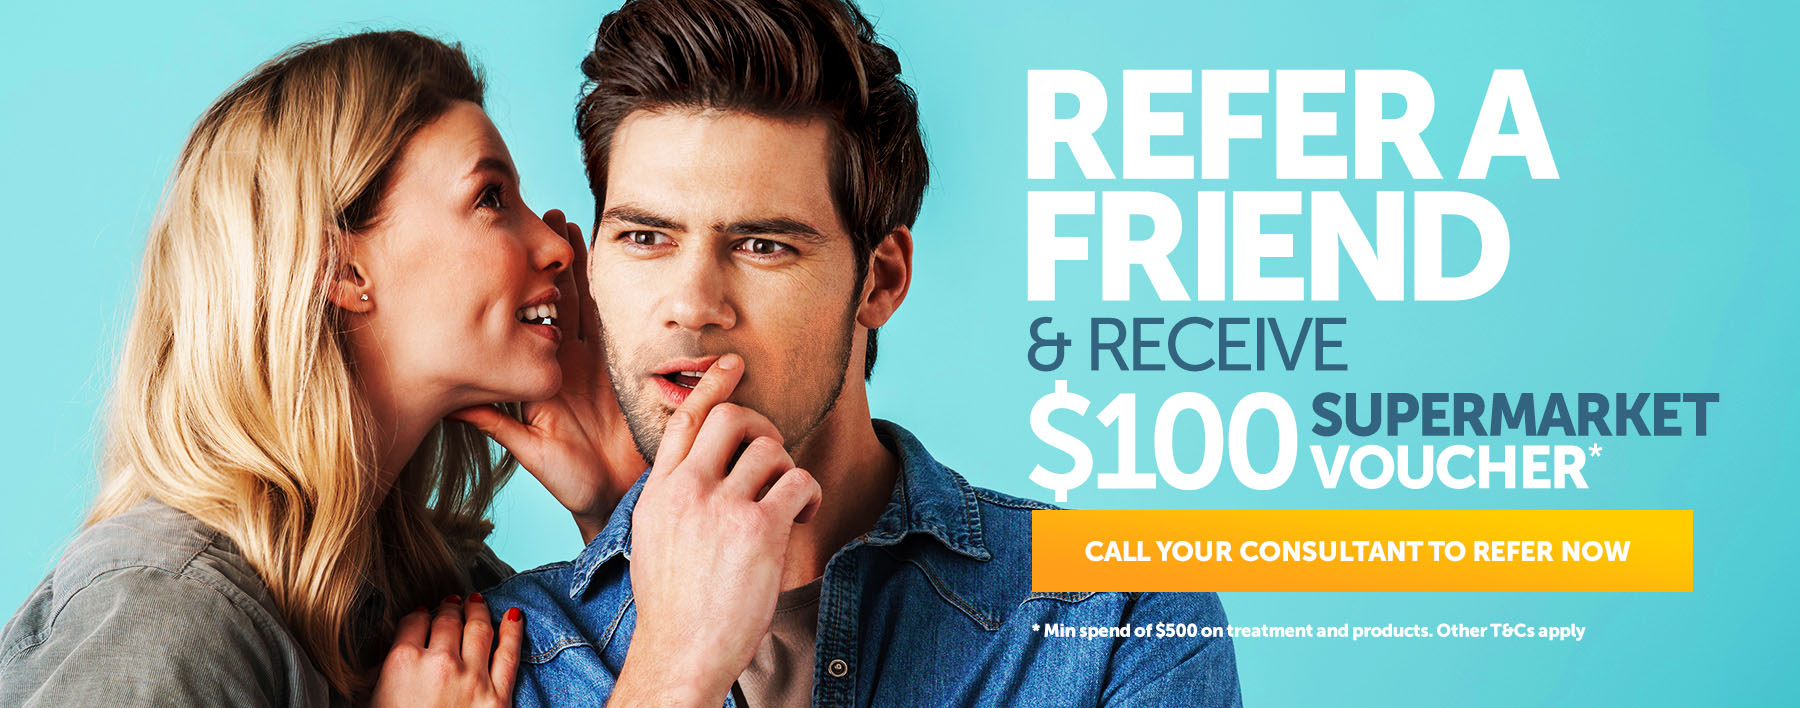 Refer a friend and Receive $100 in Supermarket Voucher